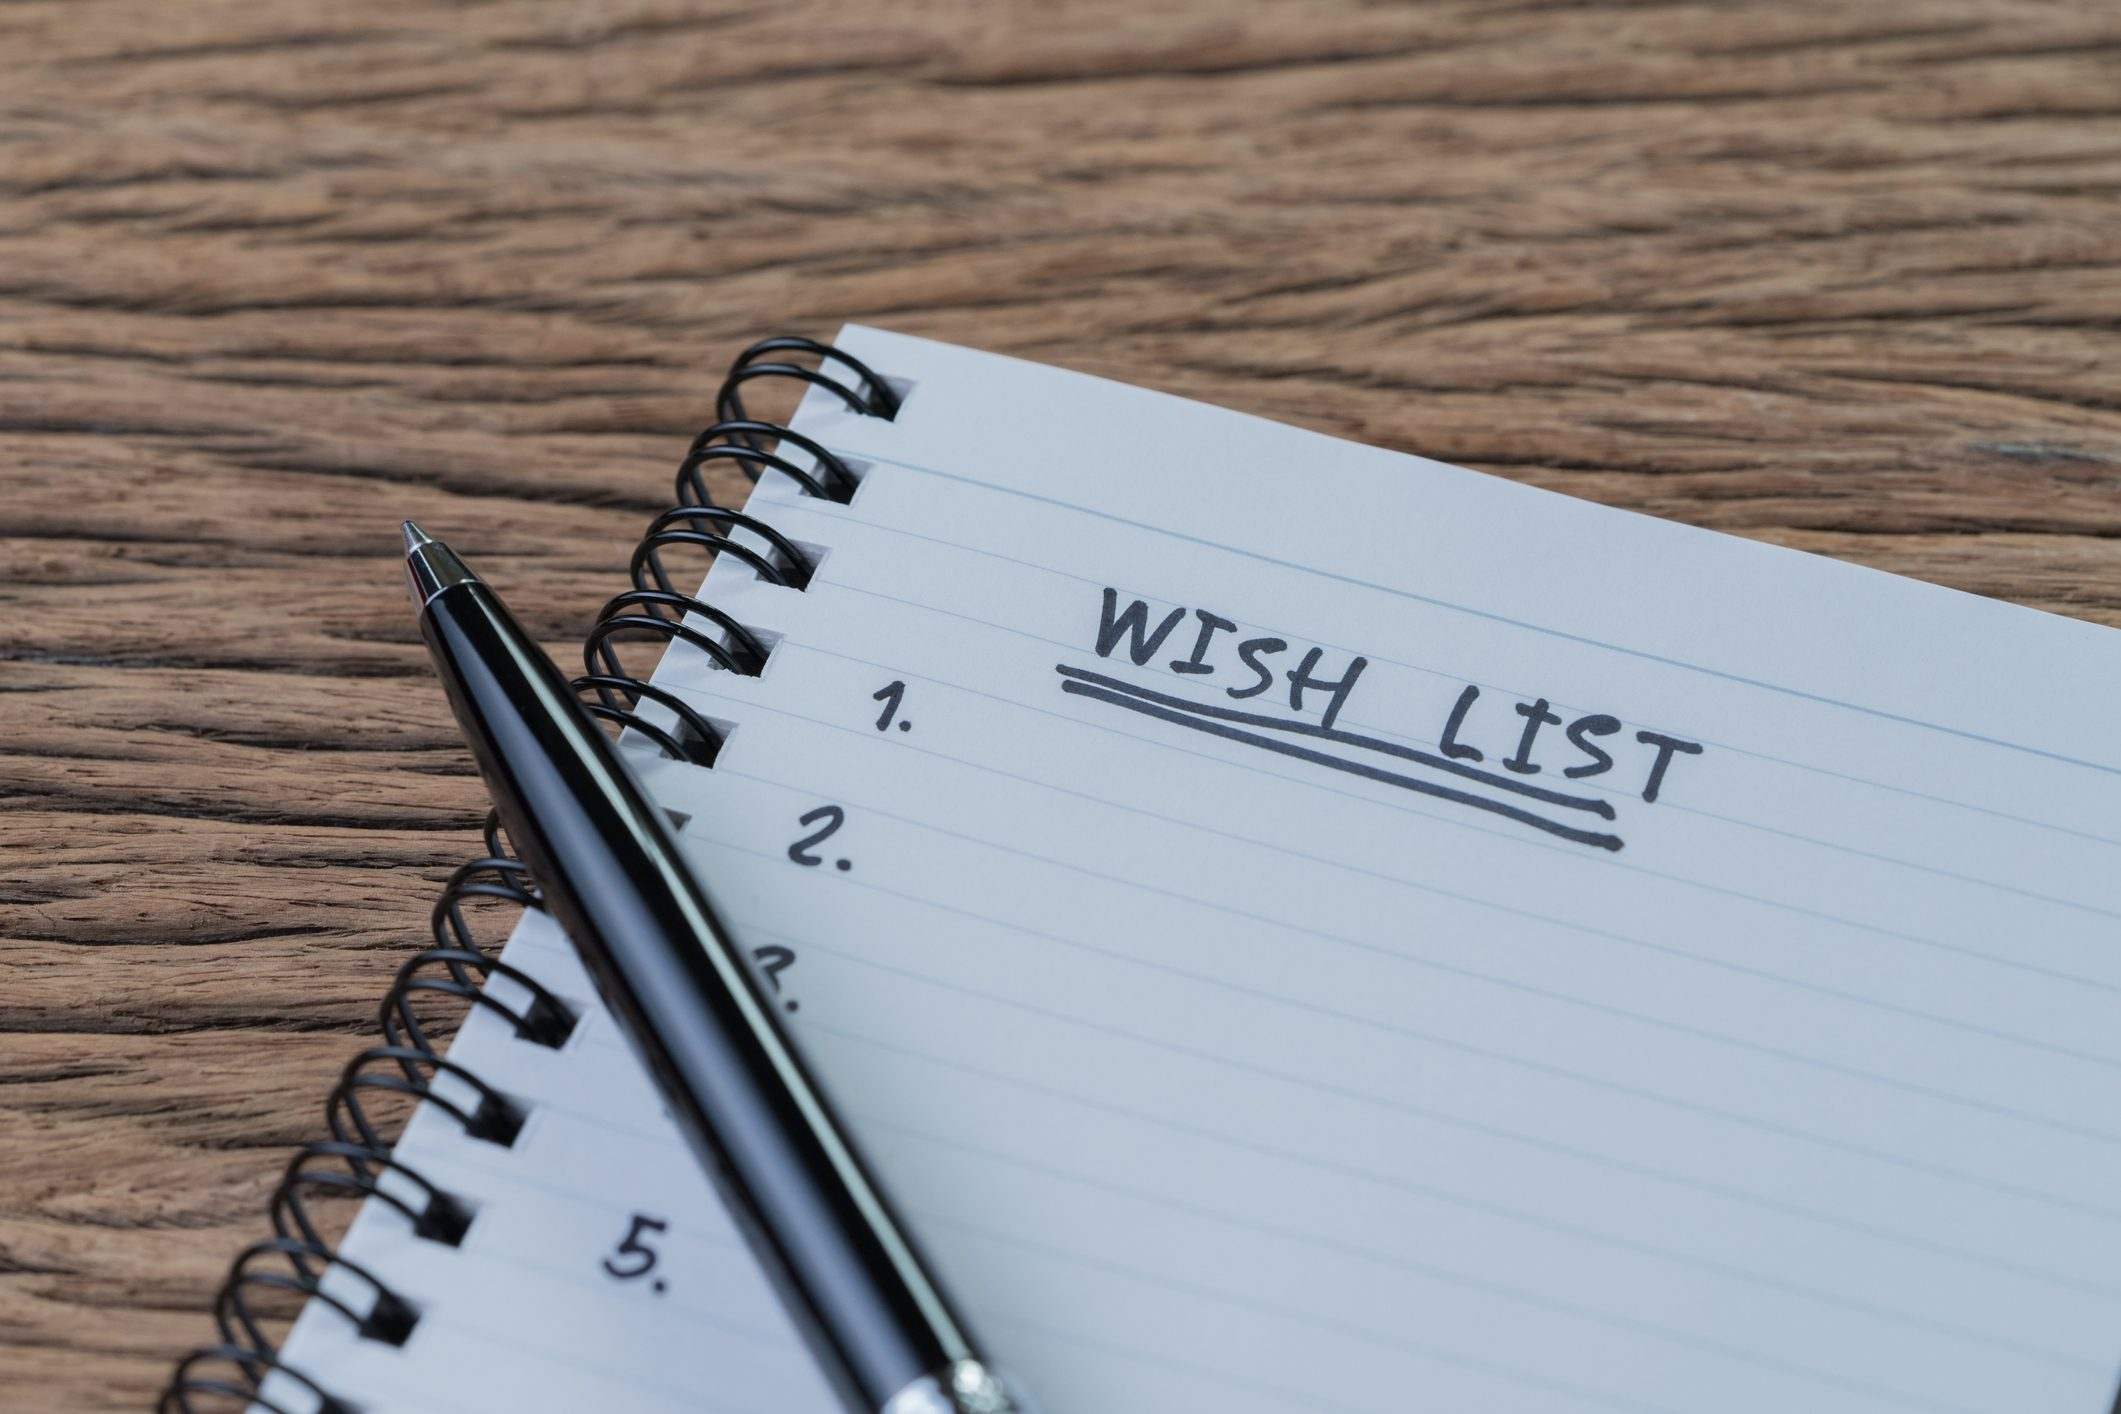 Wish list with Pen and Paper